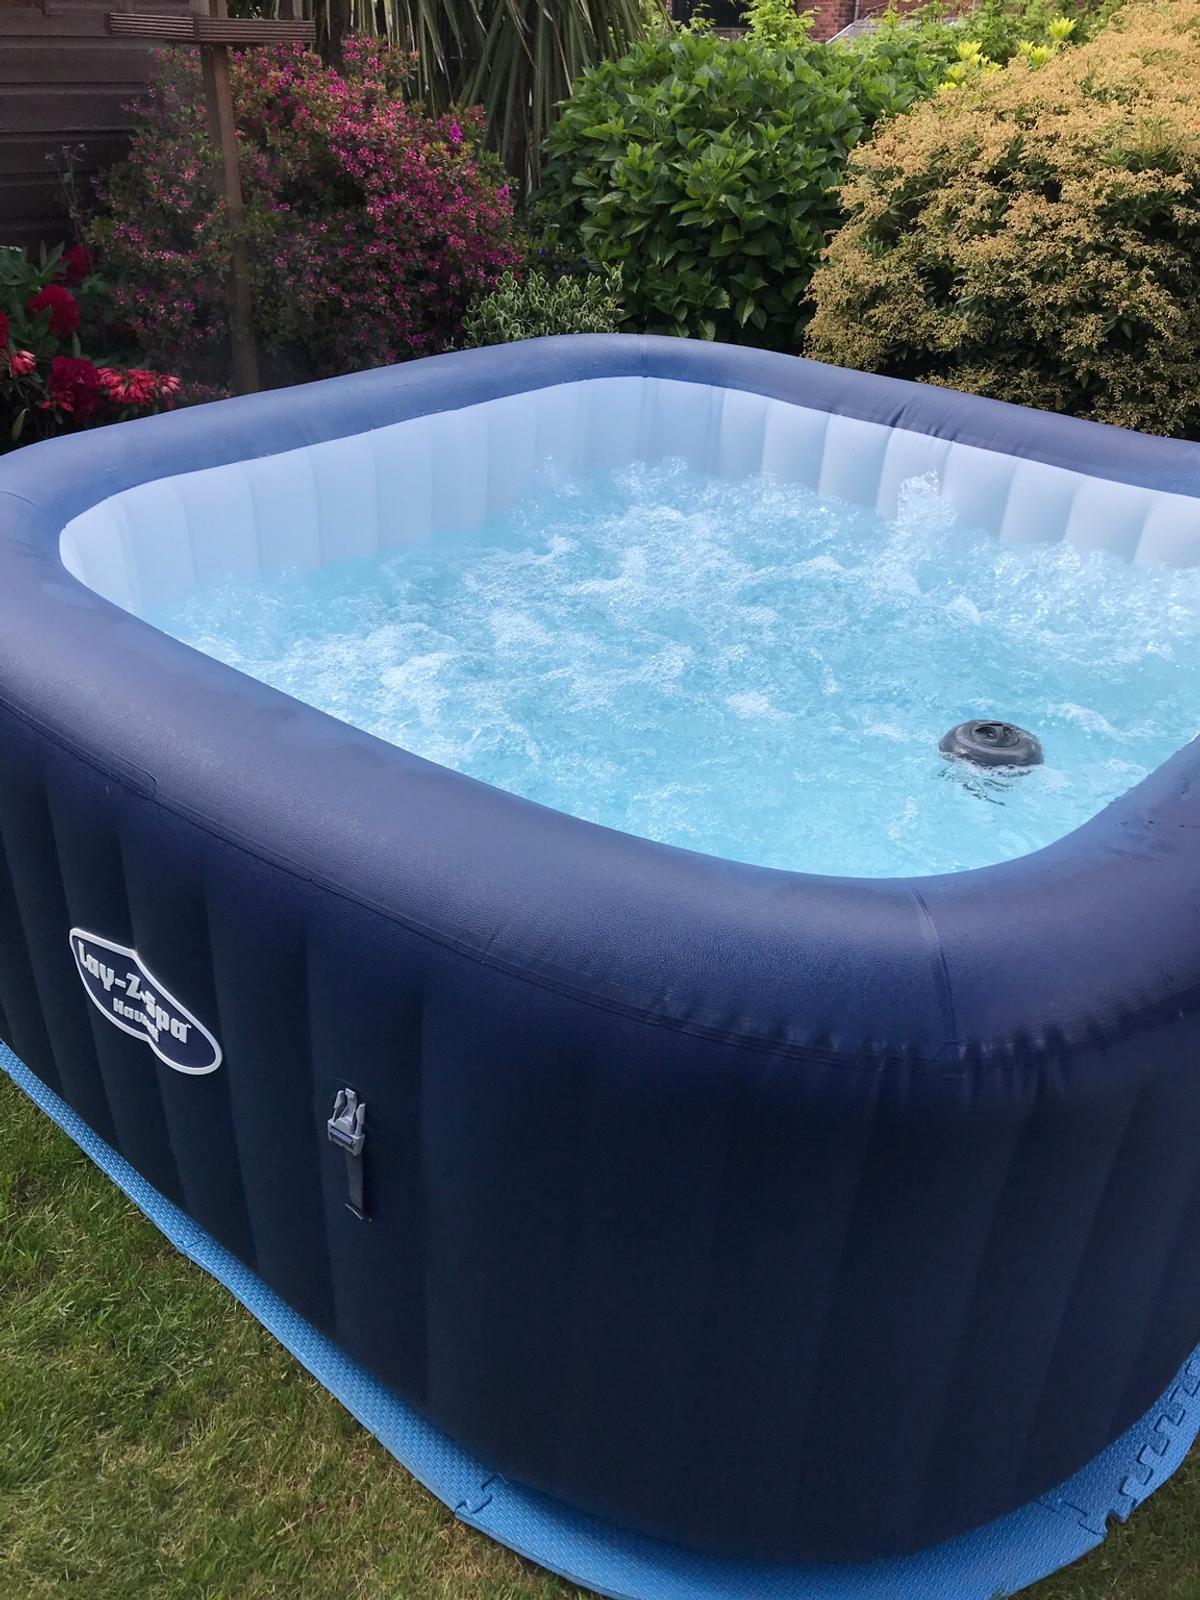 Lay Z Spa Hawaii Inflatable Hot Tub In S12 Sheffield For 150 00